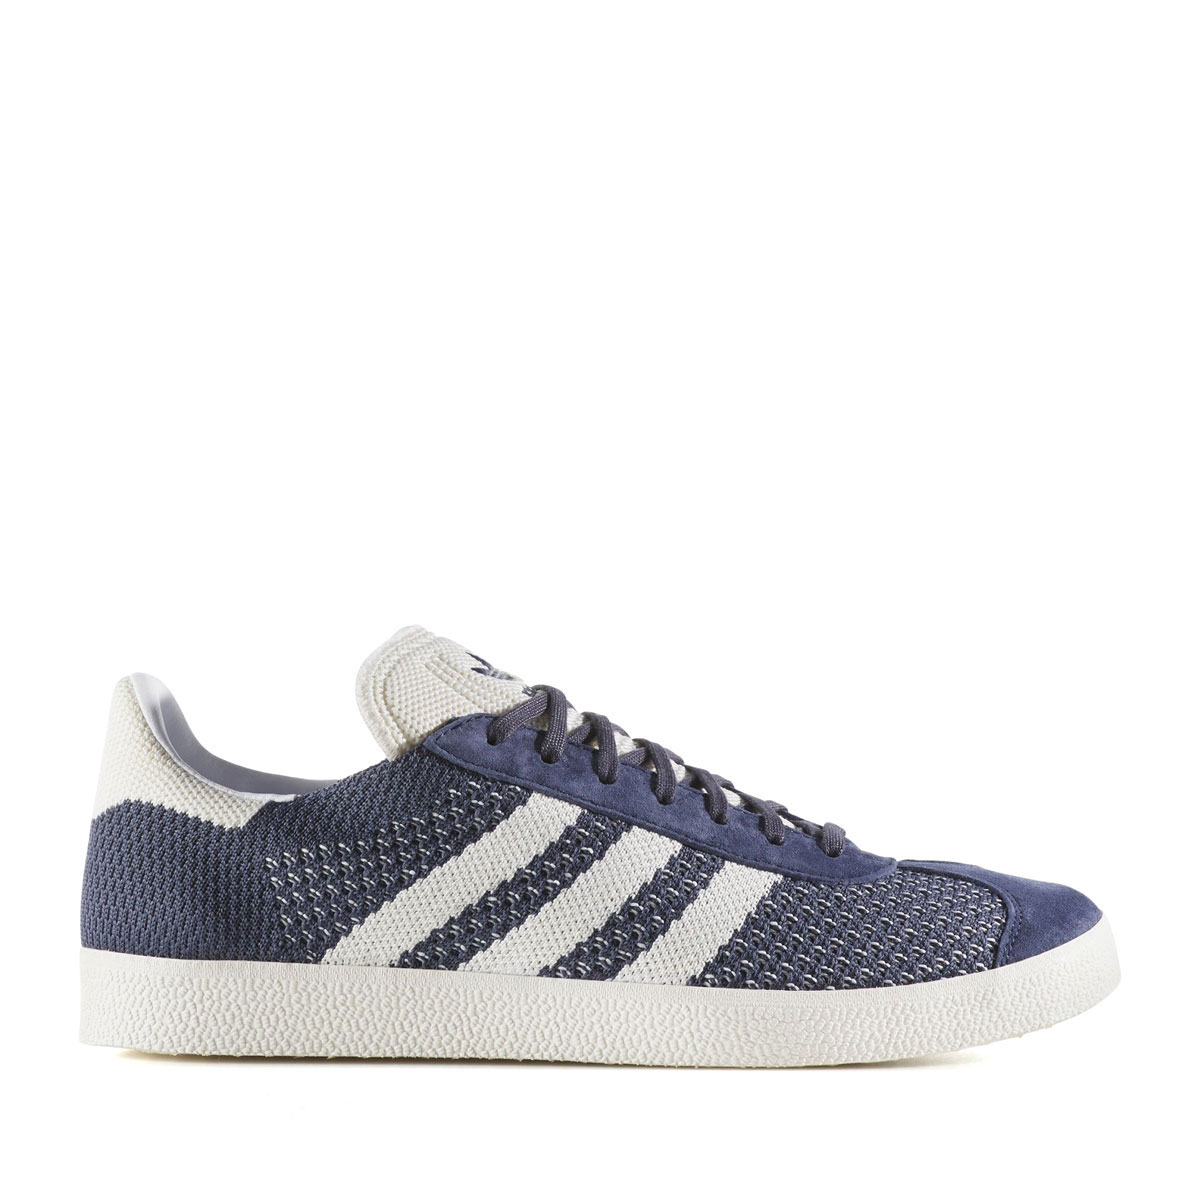 48c4794940d9 The collection that fused in the-style of sports in a design in the 70s and the  80s to keep popularity more than the adidas Originals times when the vintage  ...